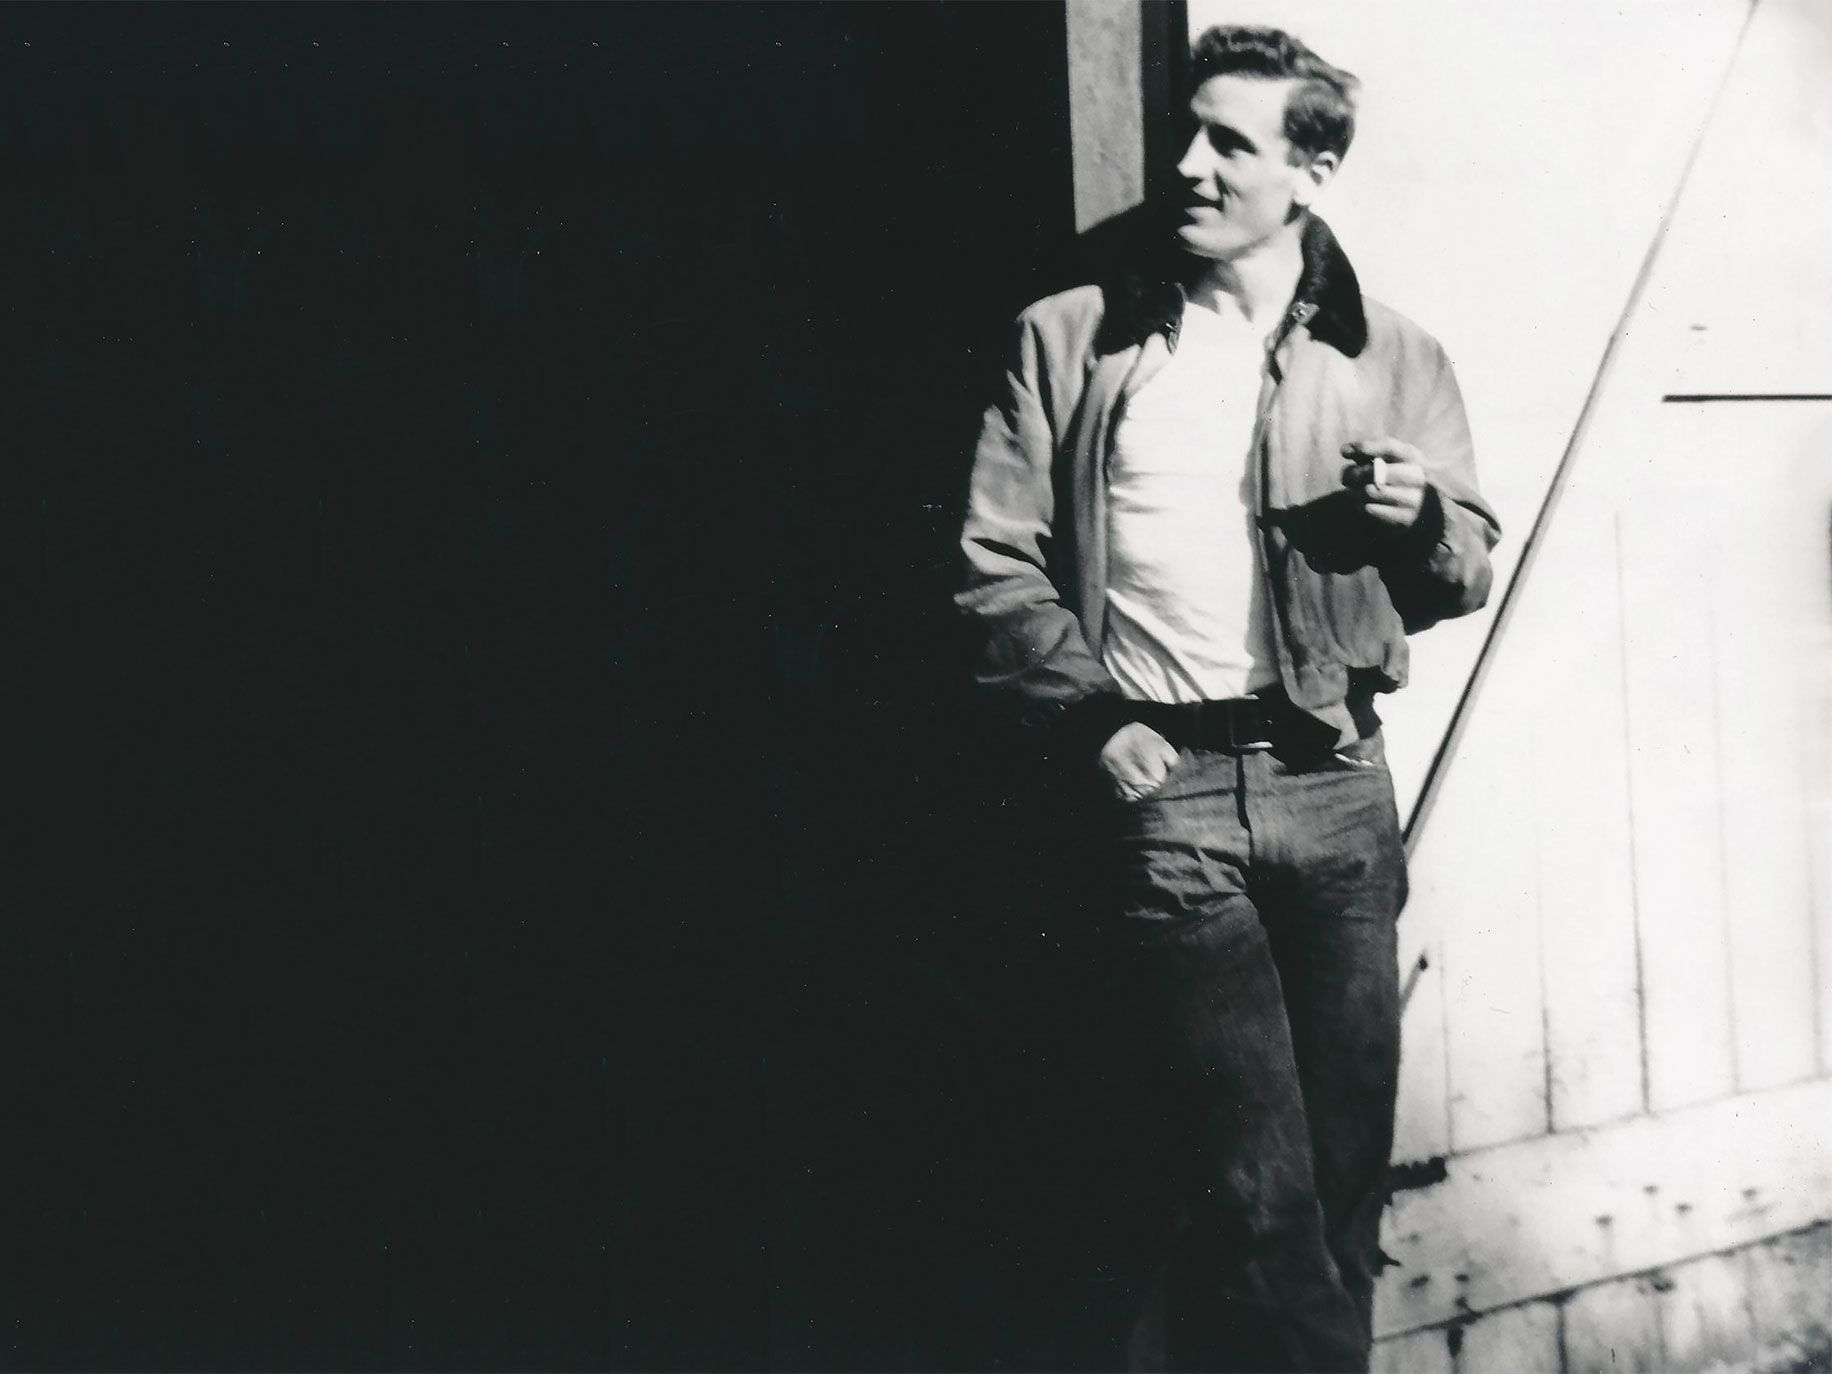 Neal Cassady leans against a door, holding a cigarette, the epitome of Beat-era cool.